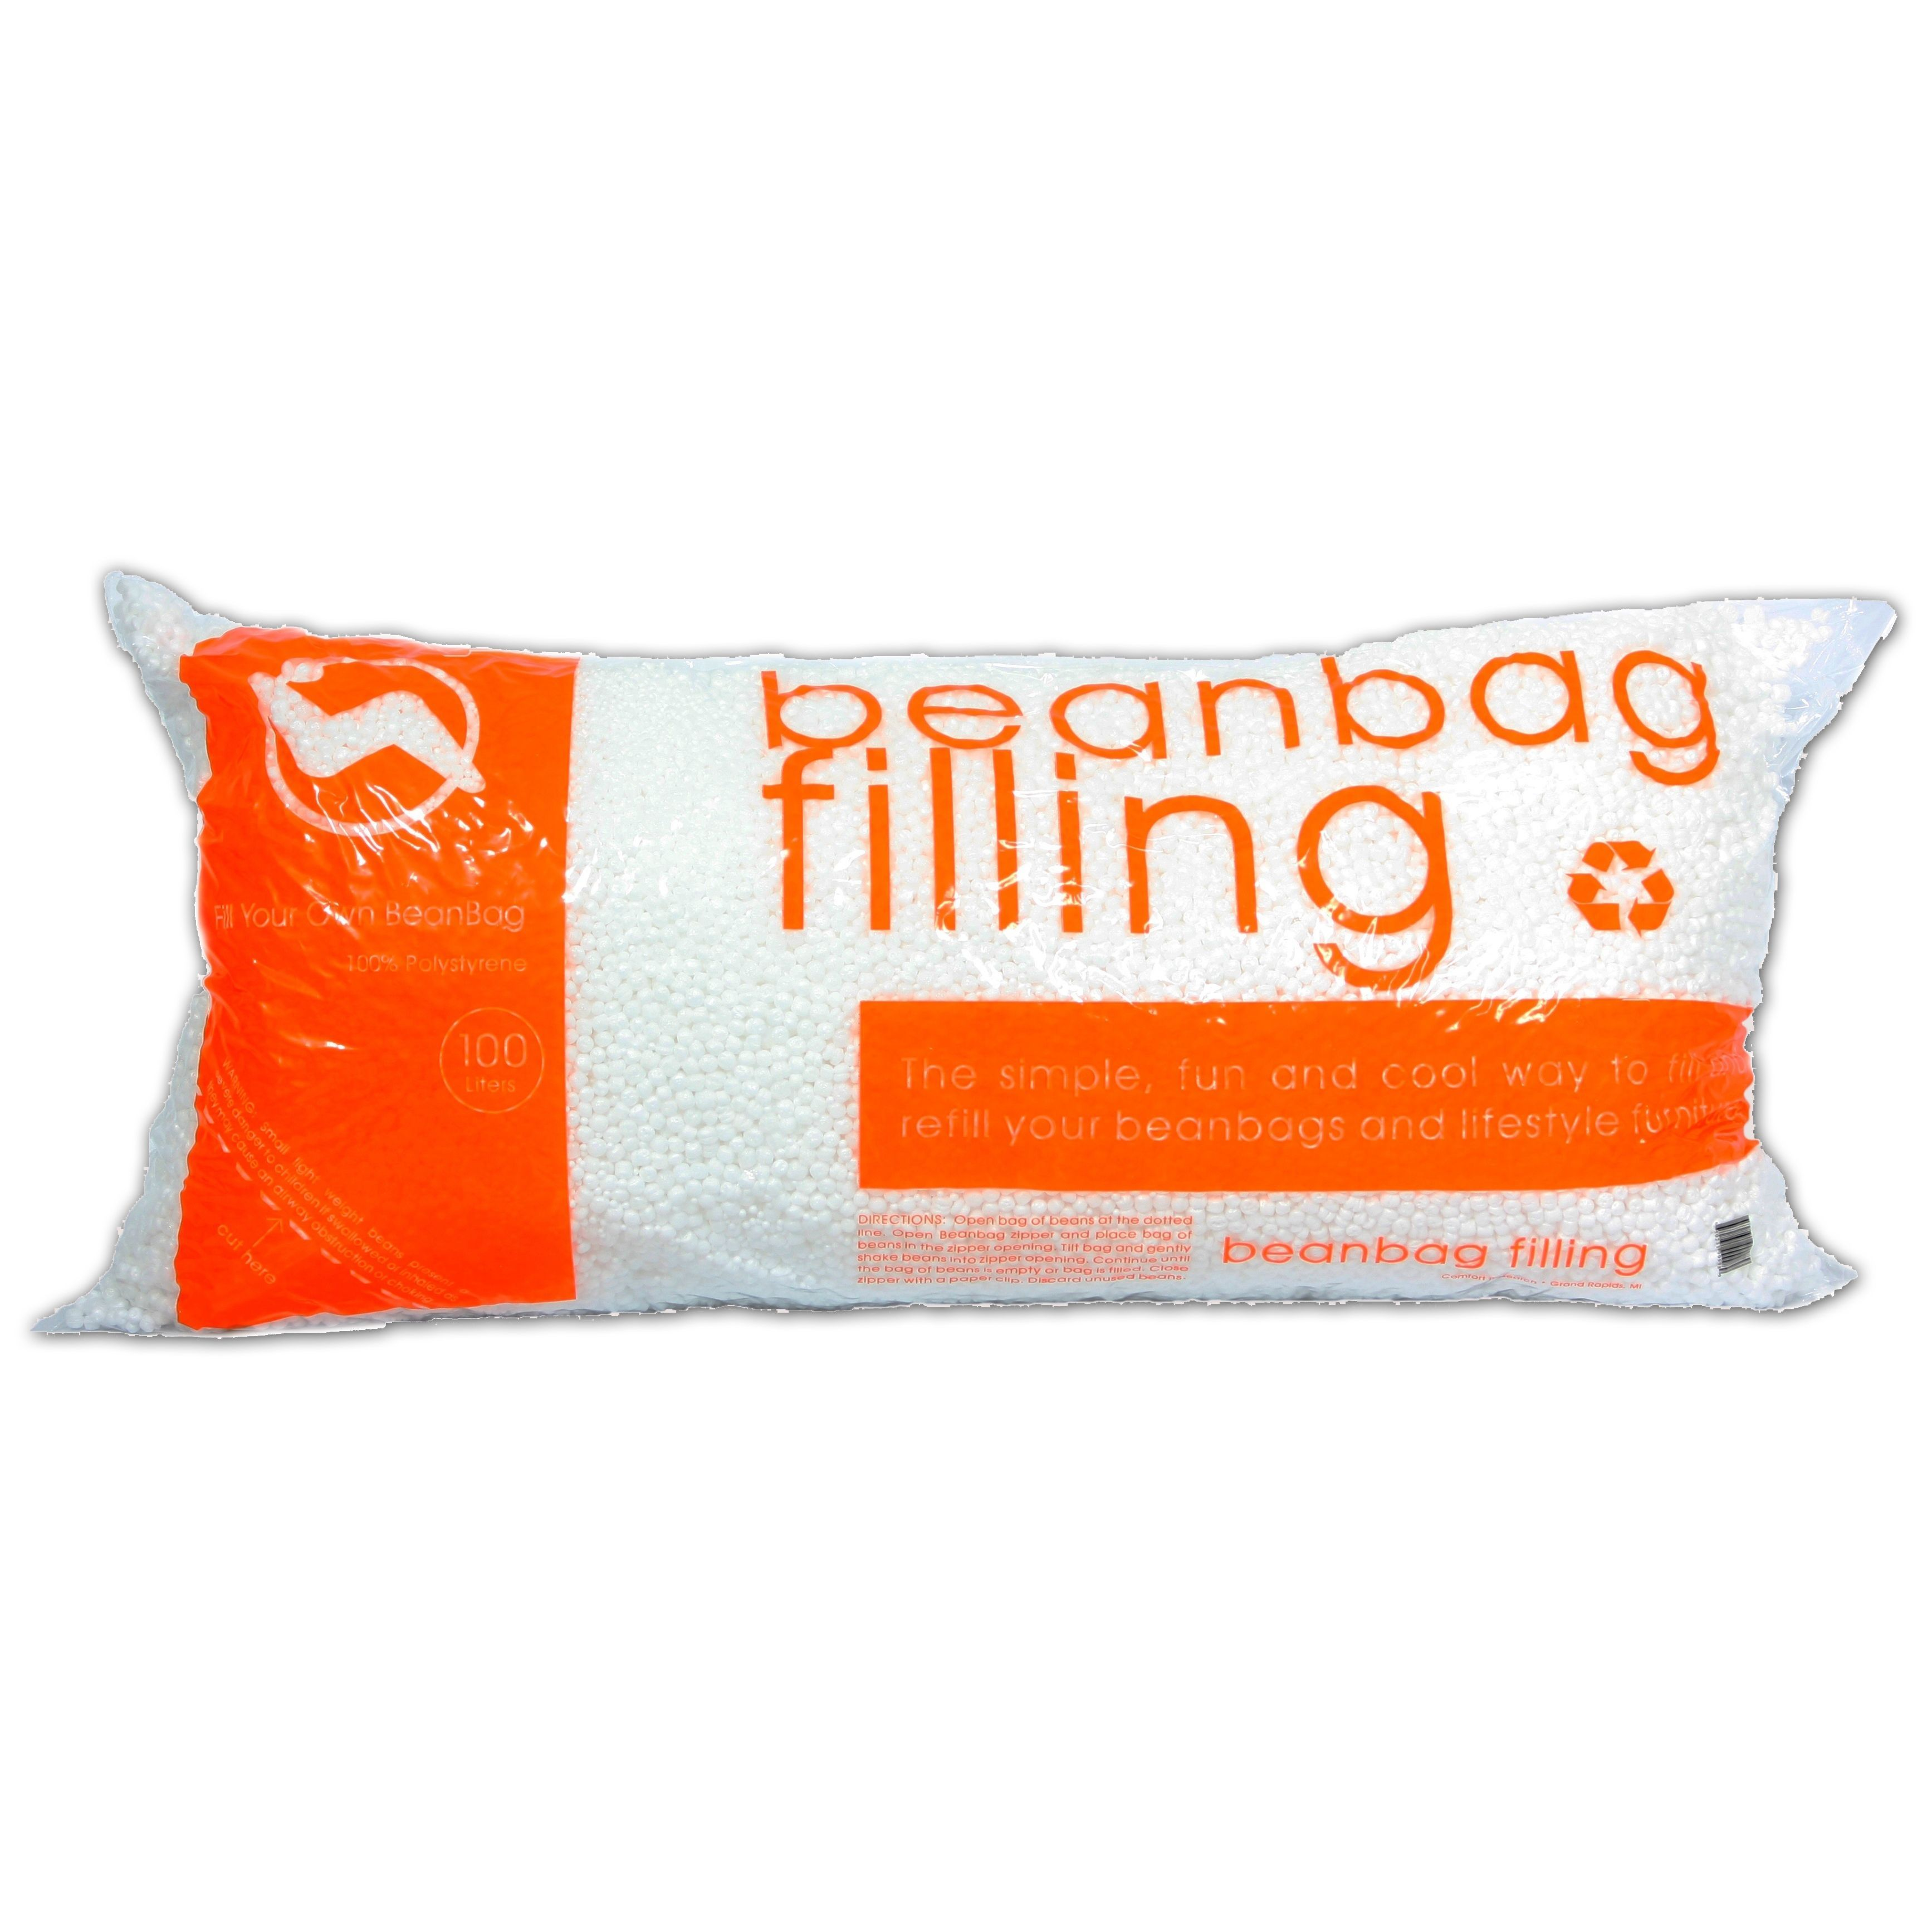 This polystyrene beanbag refill is perfect to add more